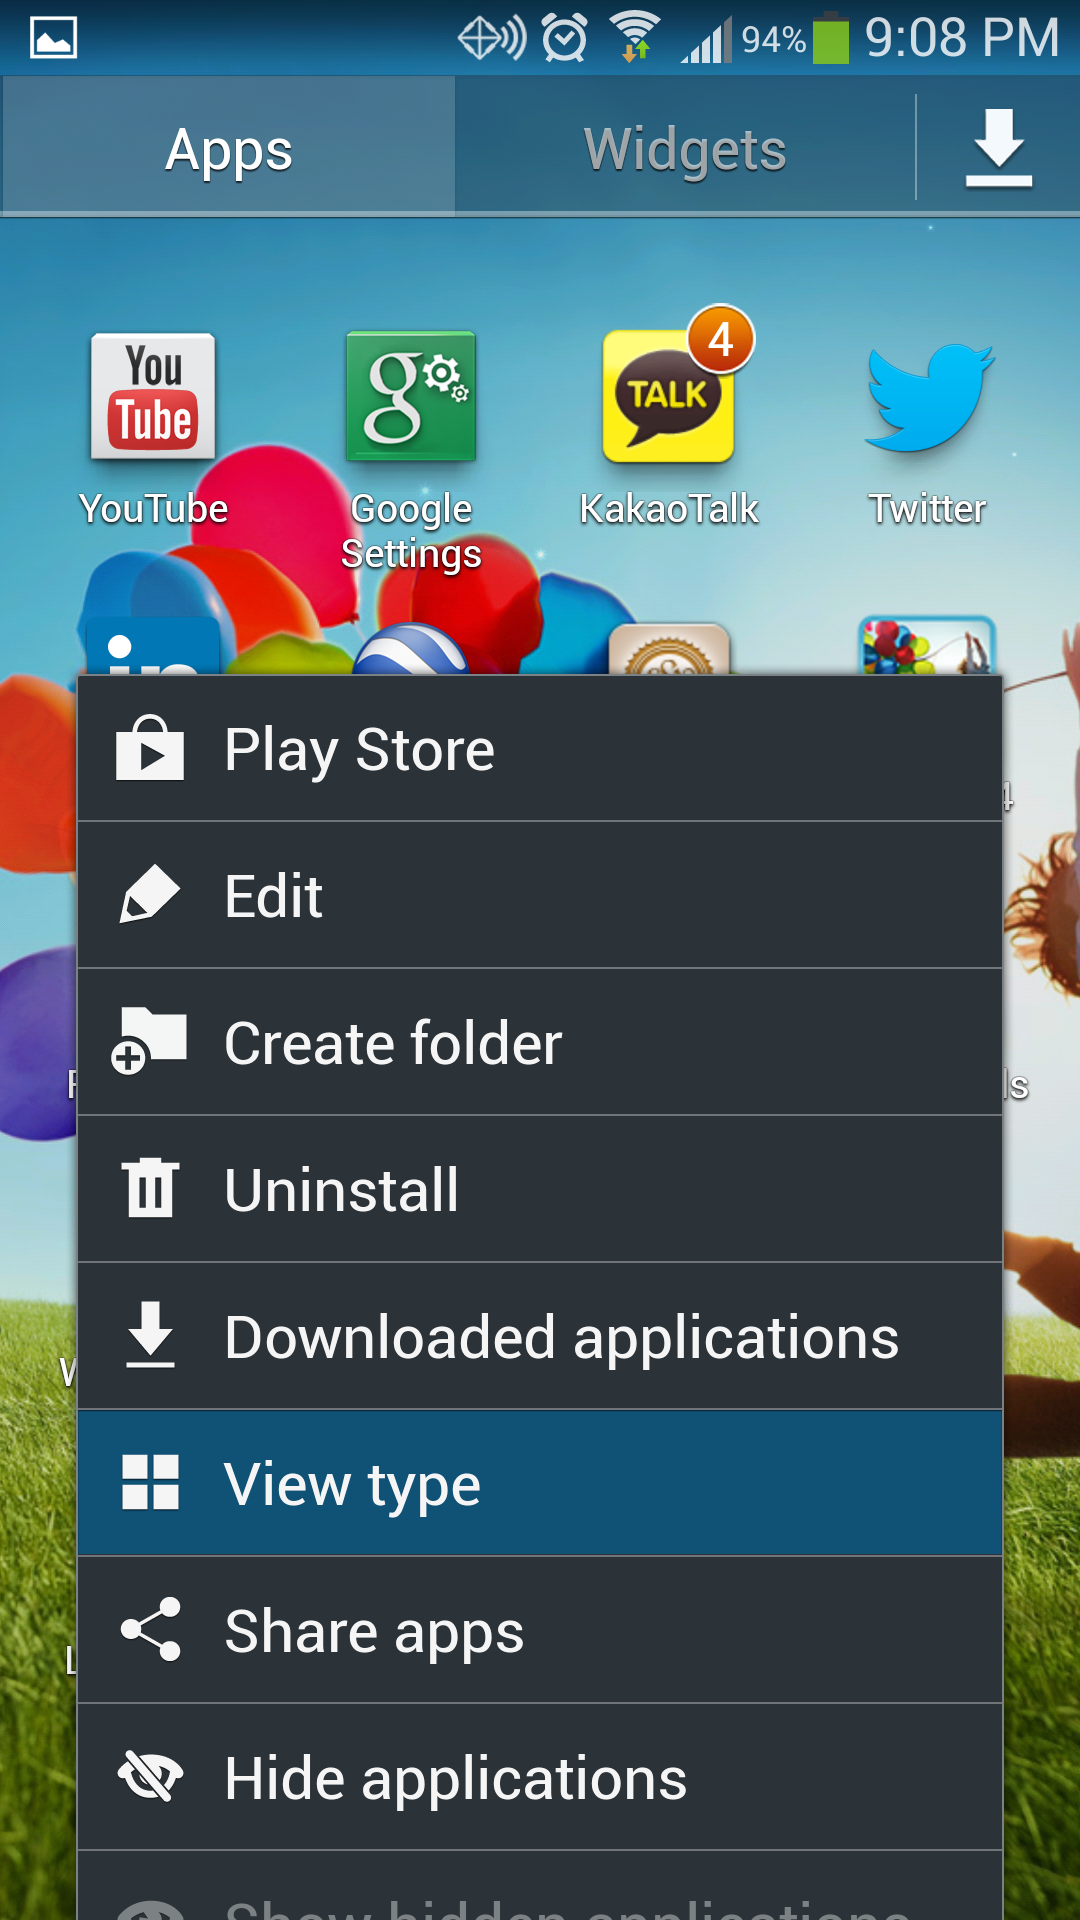 Galaxy S4 View Type